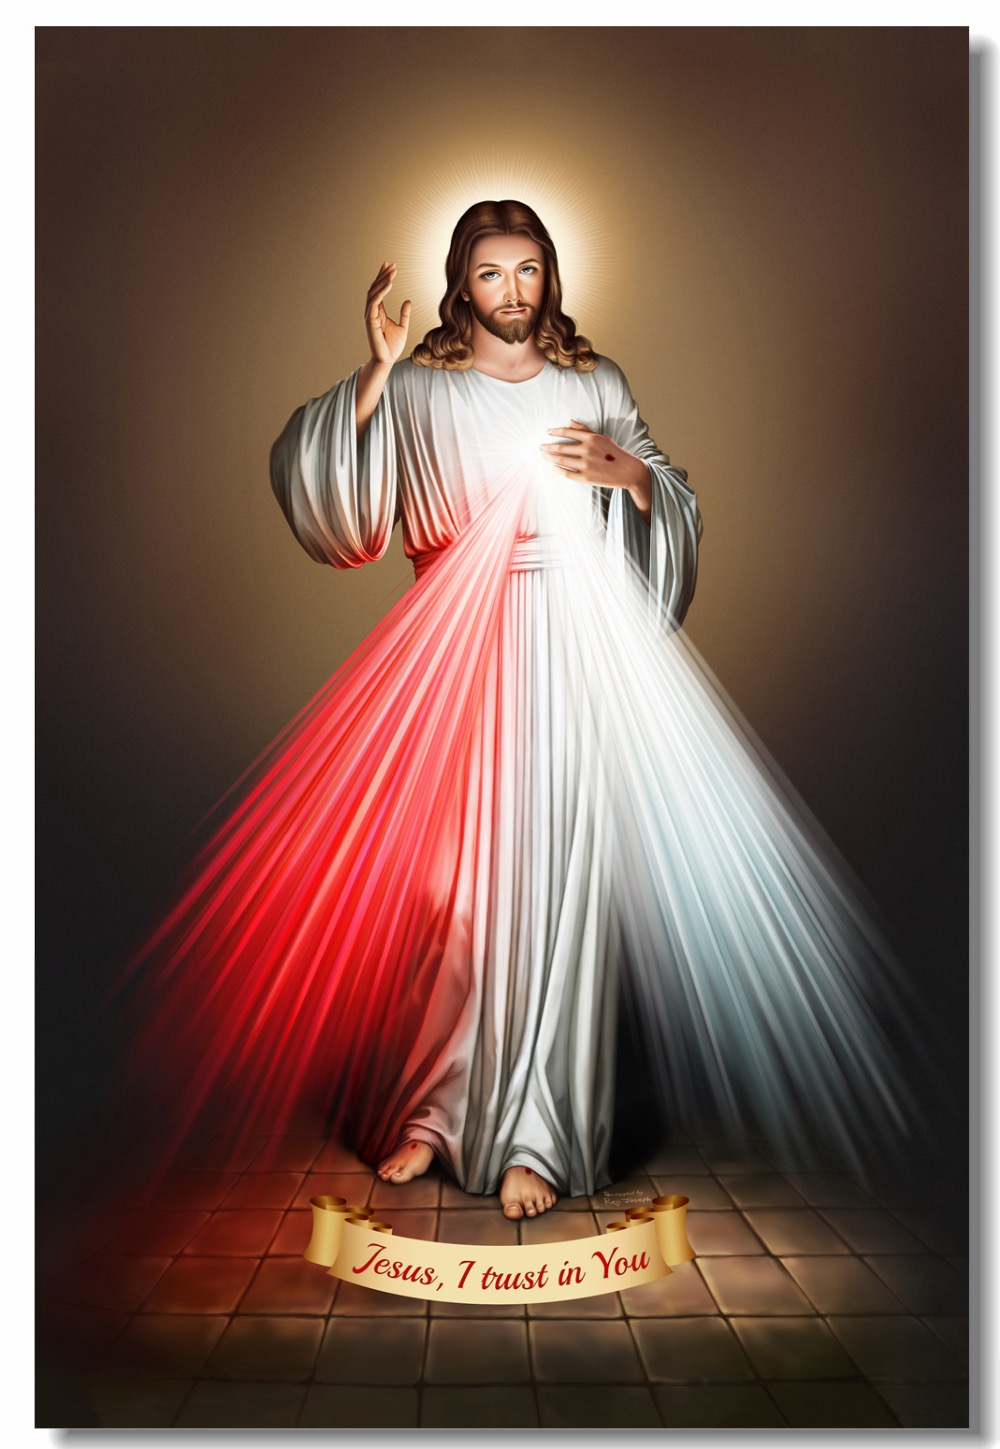 US $6 8 Custom Canvas Wall Decor Jesus Christ Poster God Bless Second Ing Wall Sticker Divine Mercy Wallpaper Bedroom Painting 1024 Wall